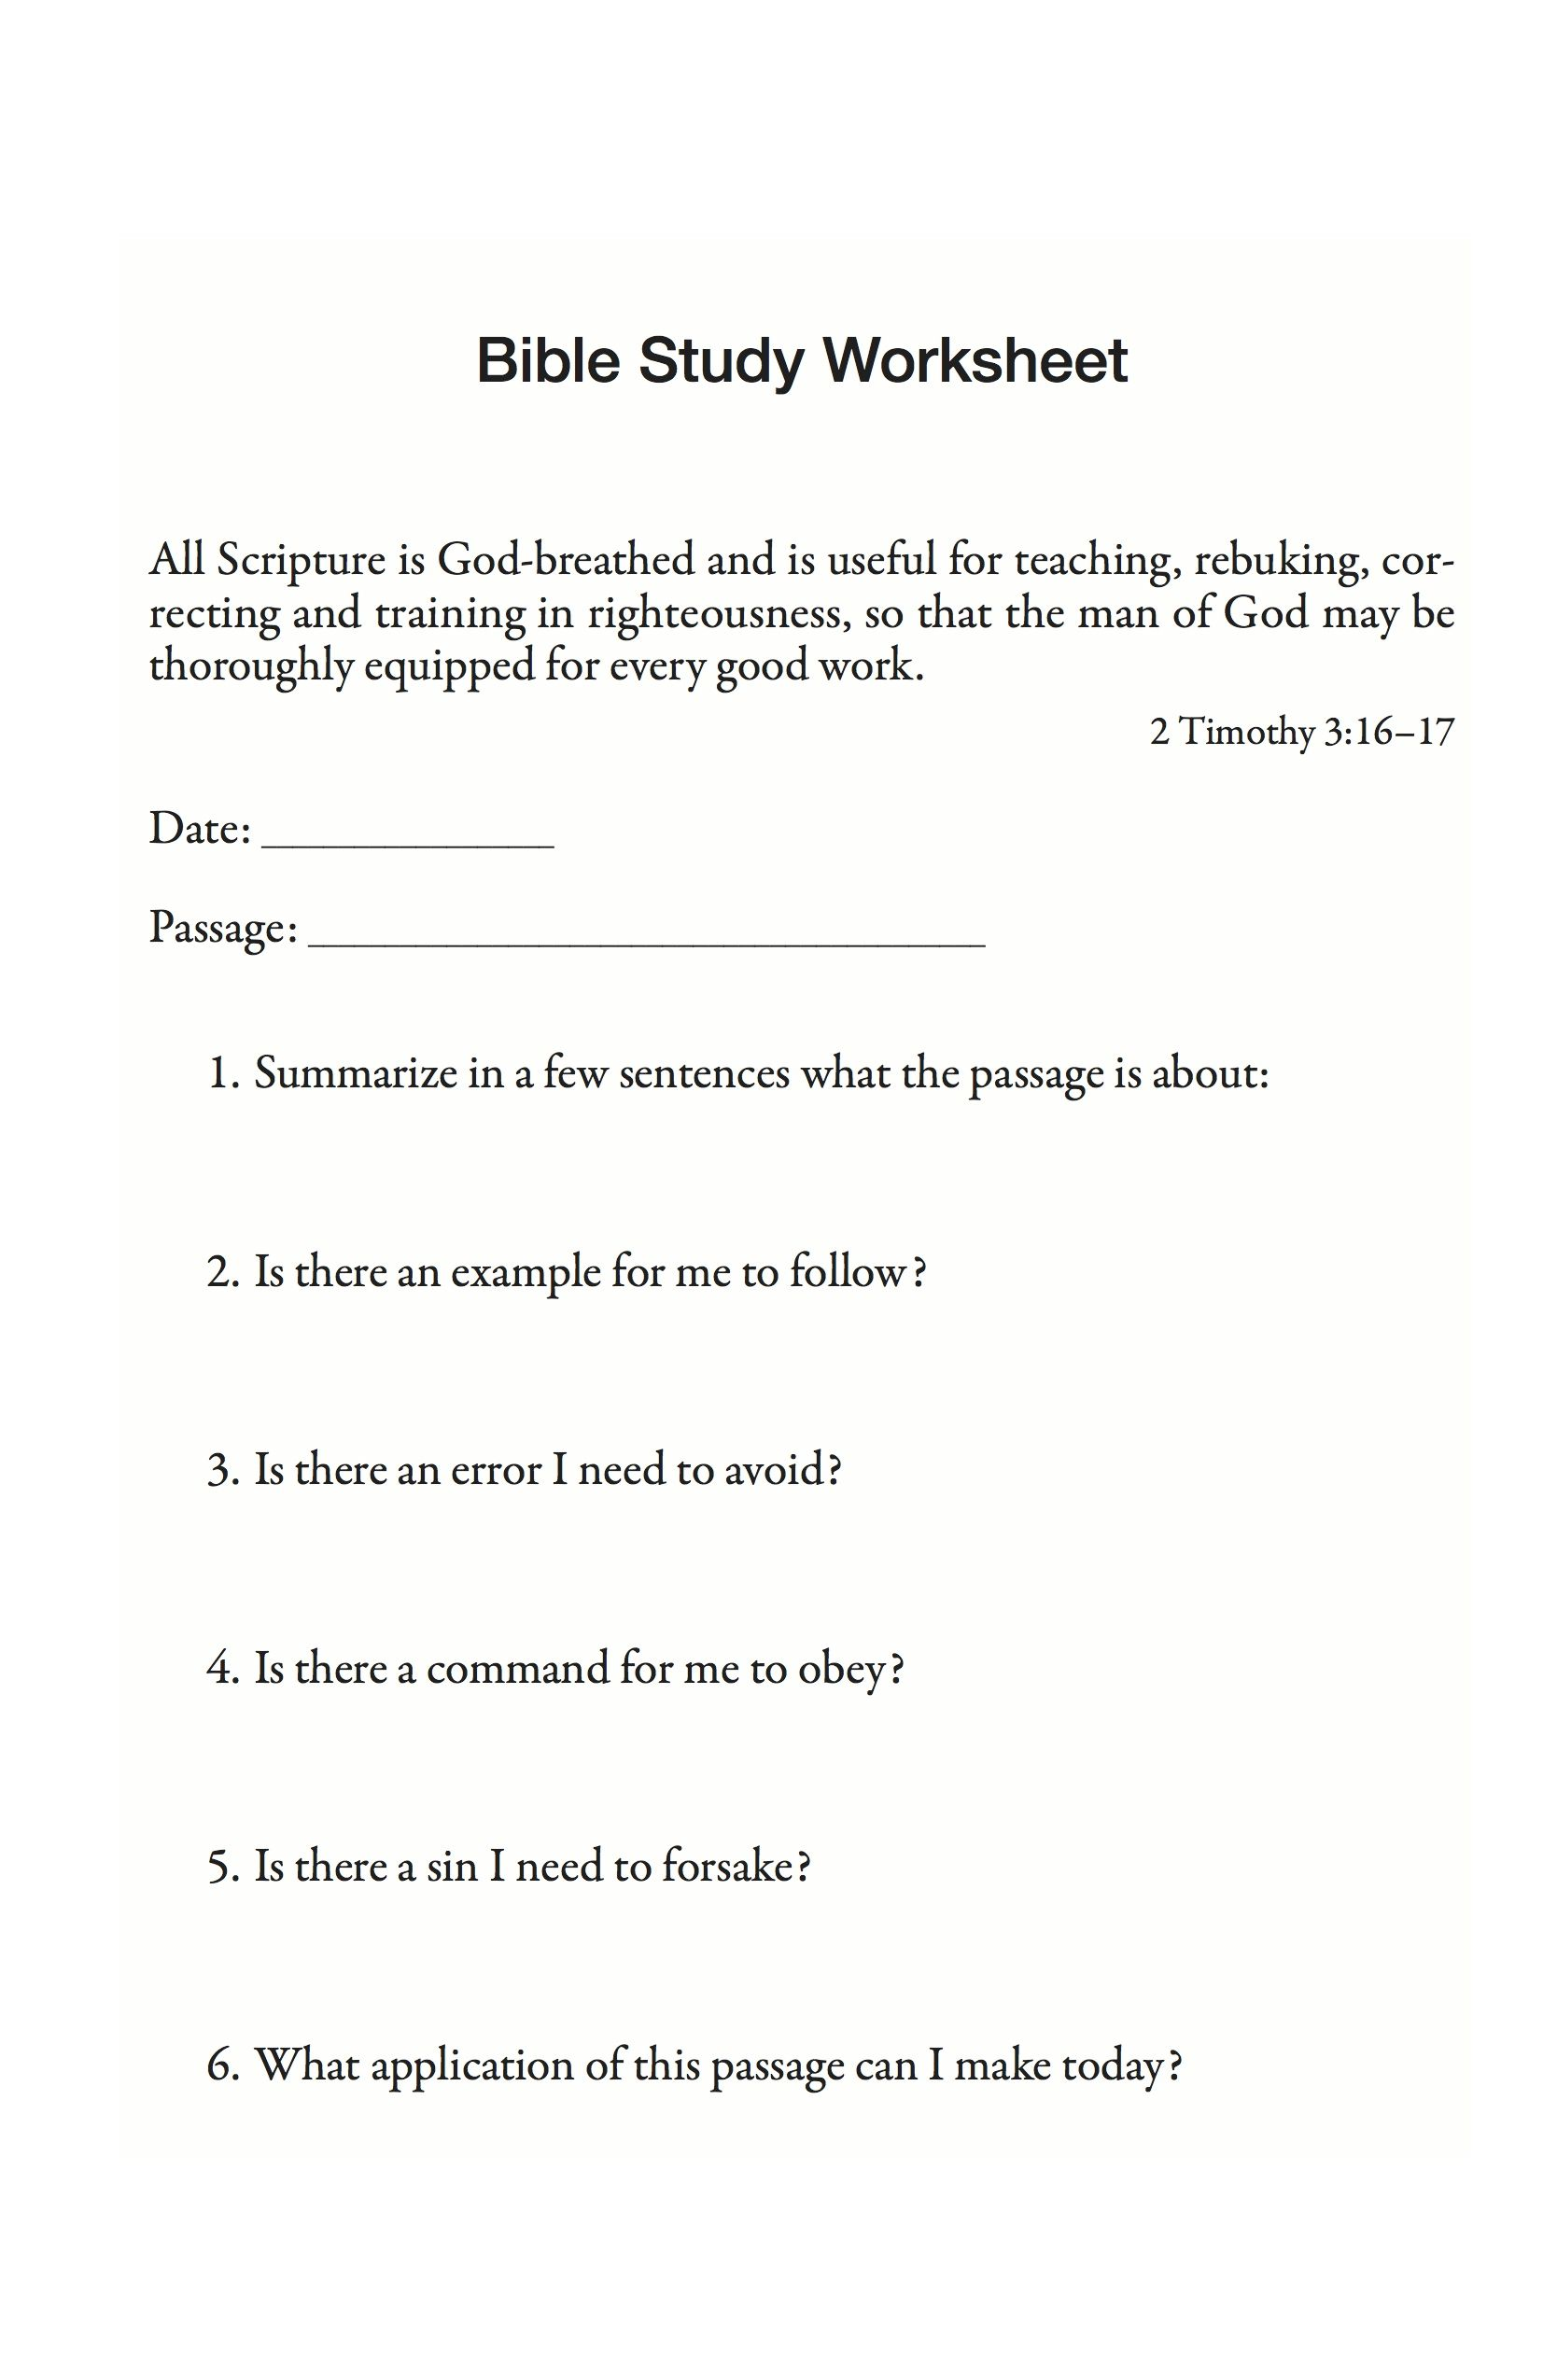 Bible study worksheet | Forms for Download